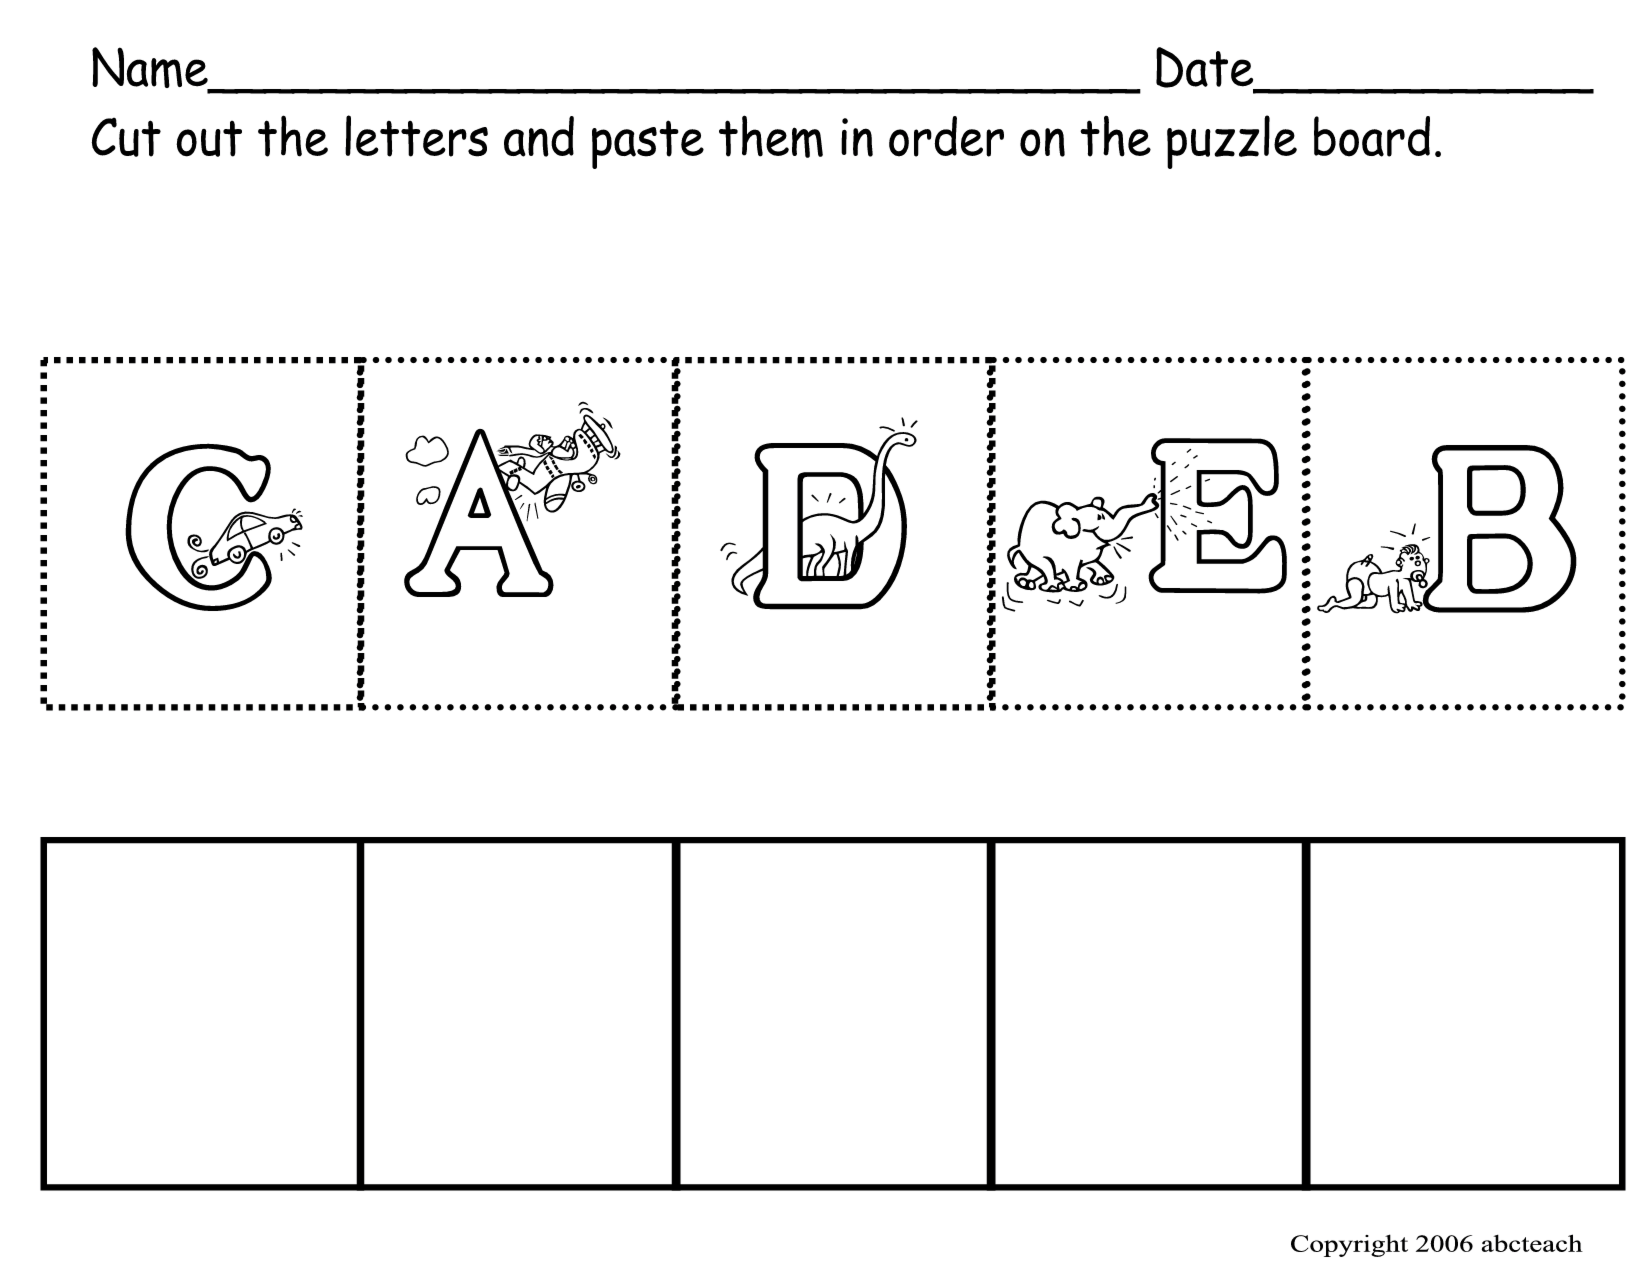 Worksheets Abc Traceable Worksheets preschool abc worksheets kiduls printable letters printable